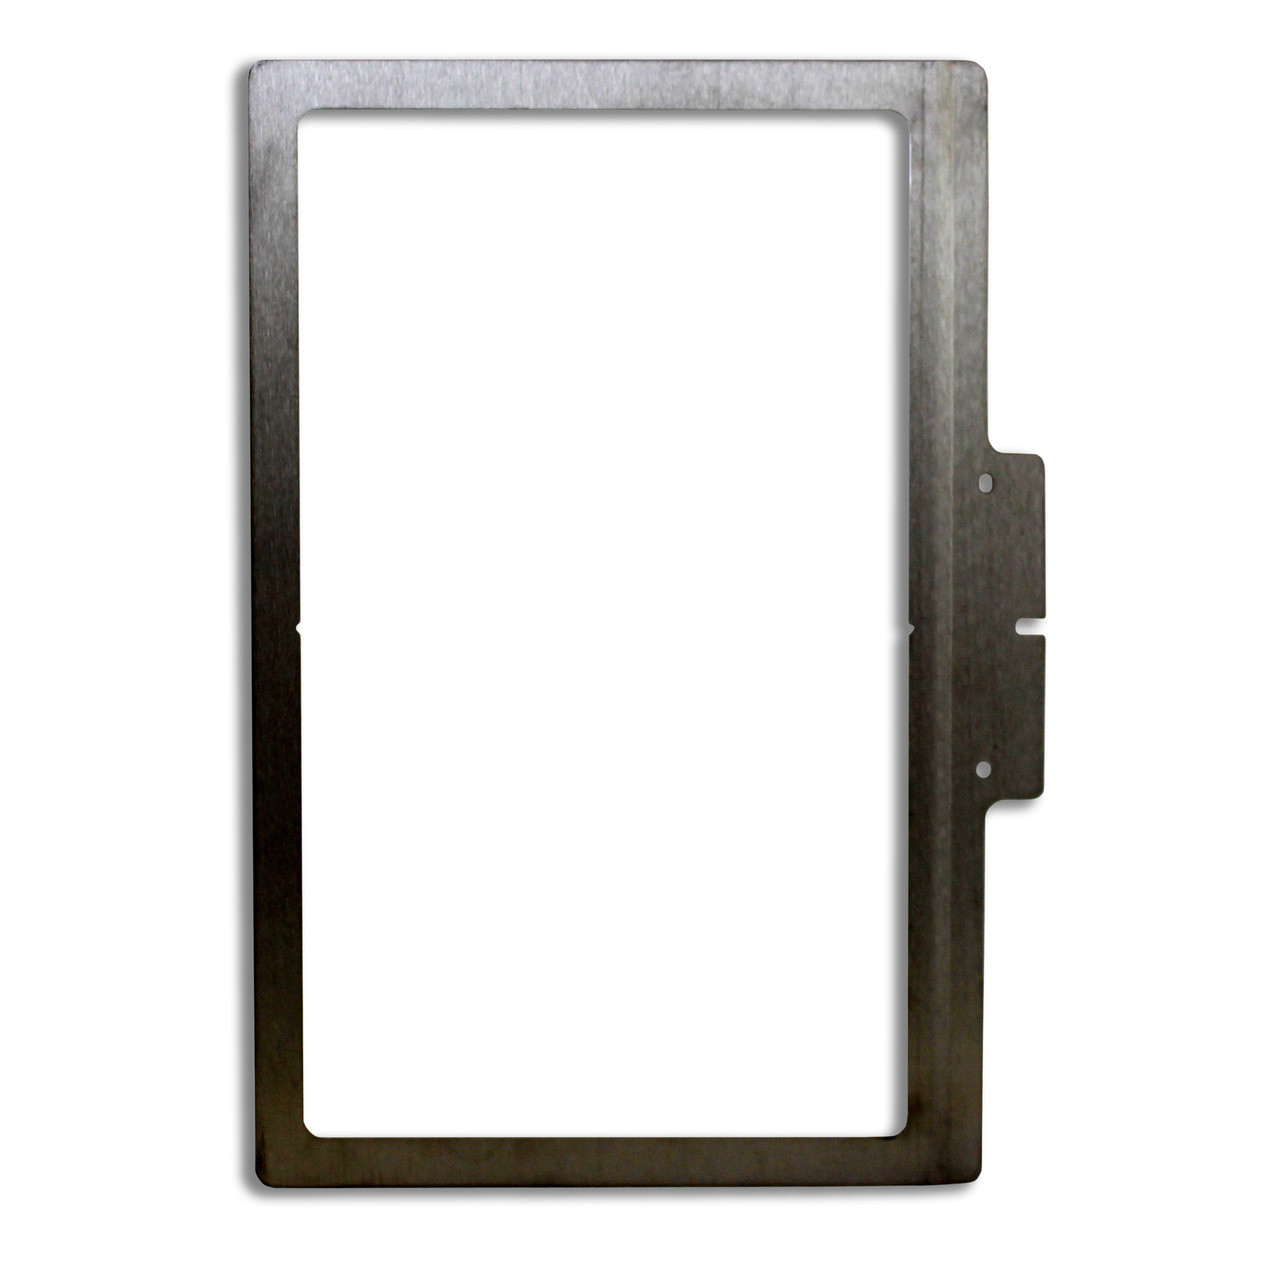 "Fast Frames 12"" x 7"" Add On Frame for Use with 7 in 1 Exchange ..."